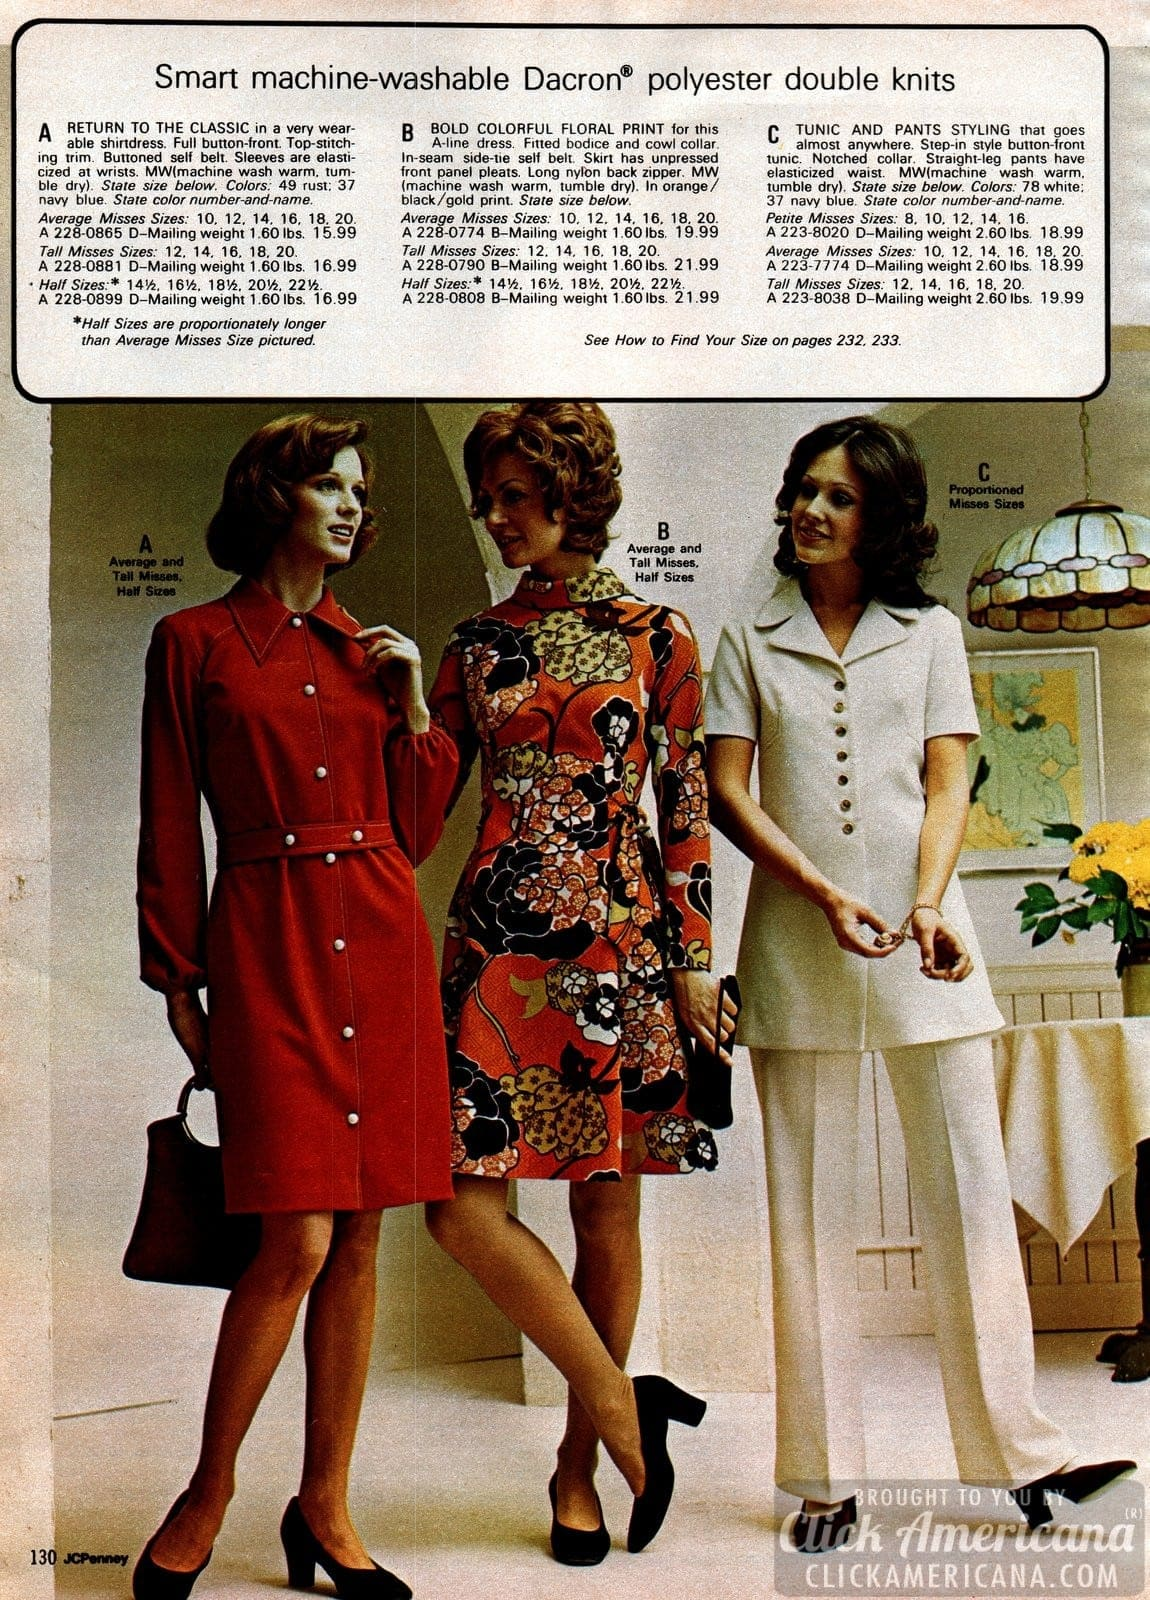 Polyester shirtdresses, floral A-line print dress with cowl collar, and matching tunic and pants set